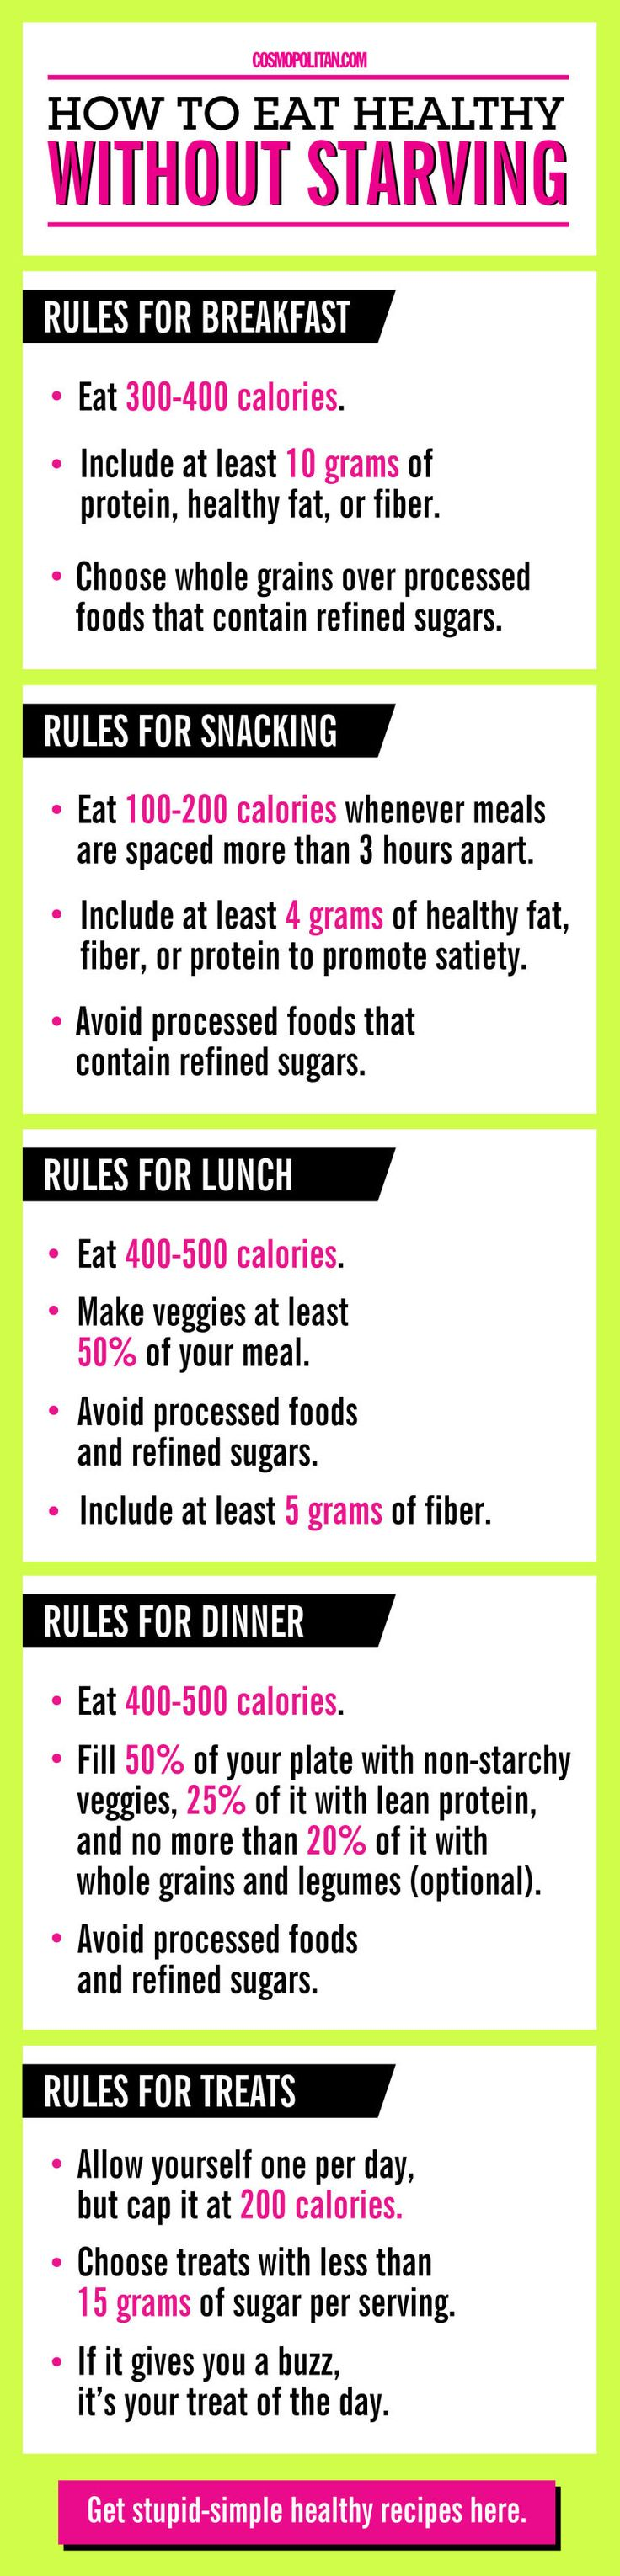 16 Healthy Eating Rules You Should Always Follow How To